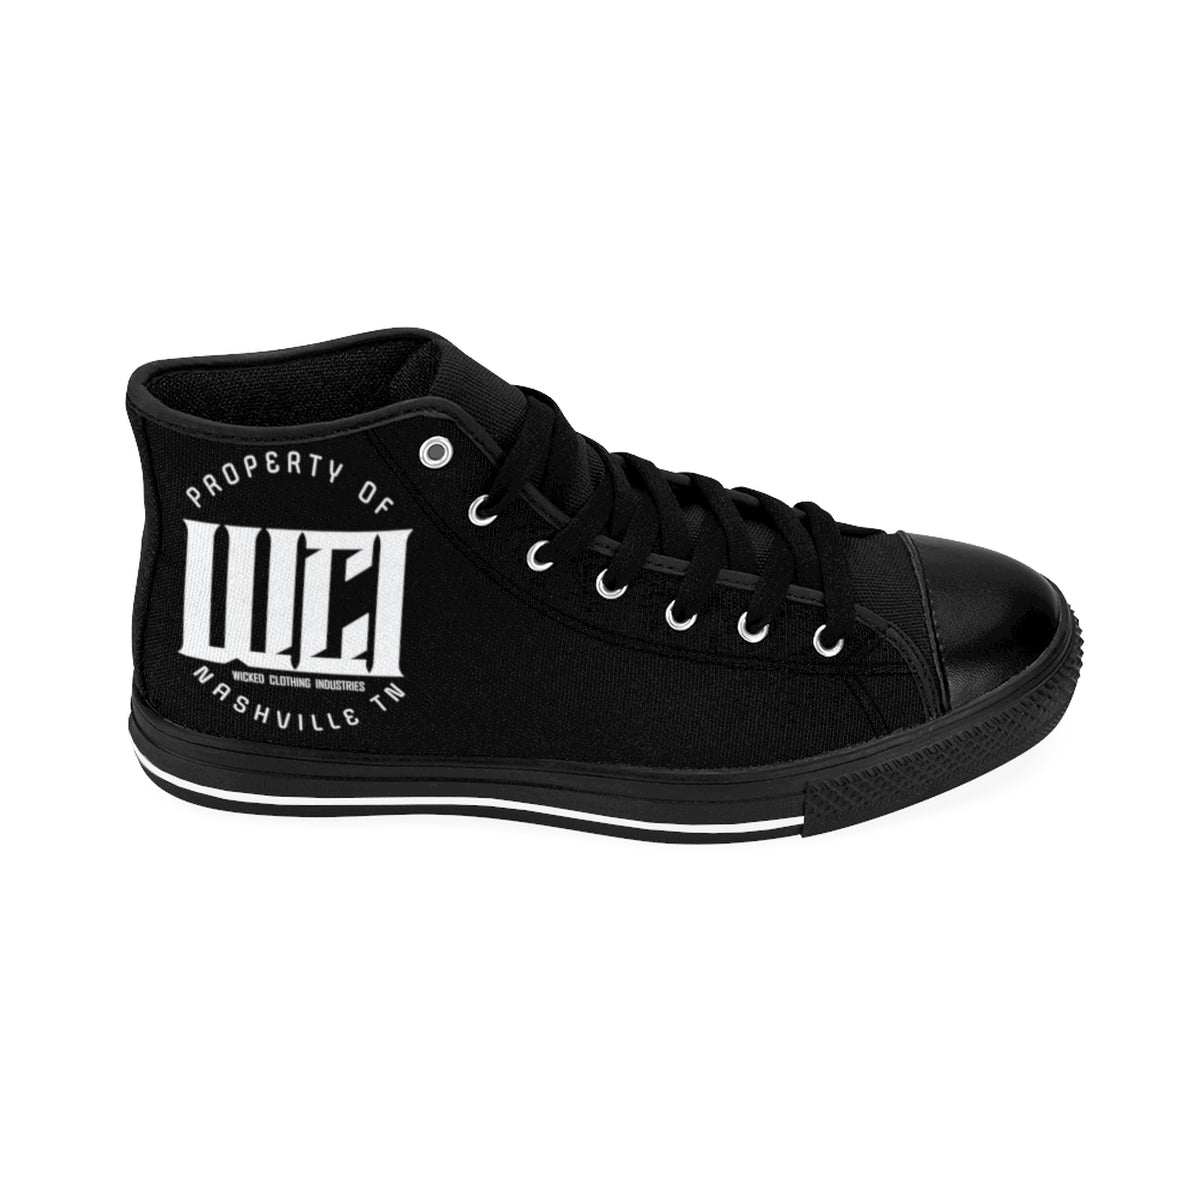 WCI /White/2019/Women's High-top Sneakers